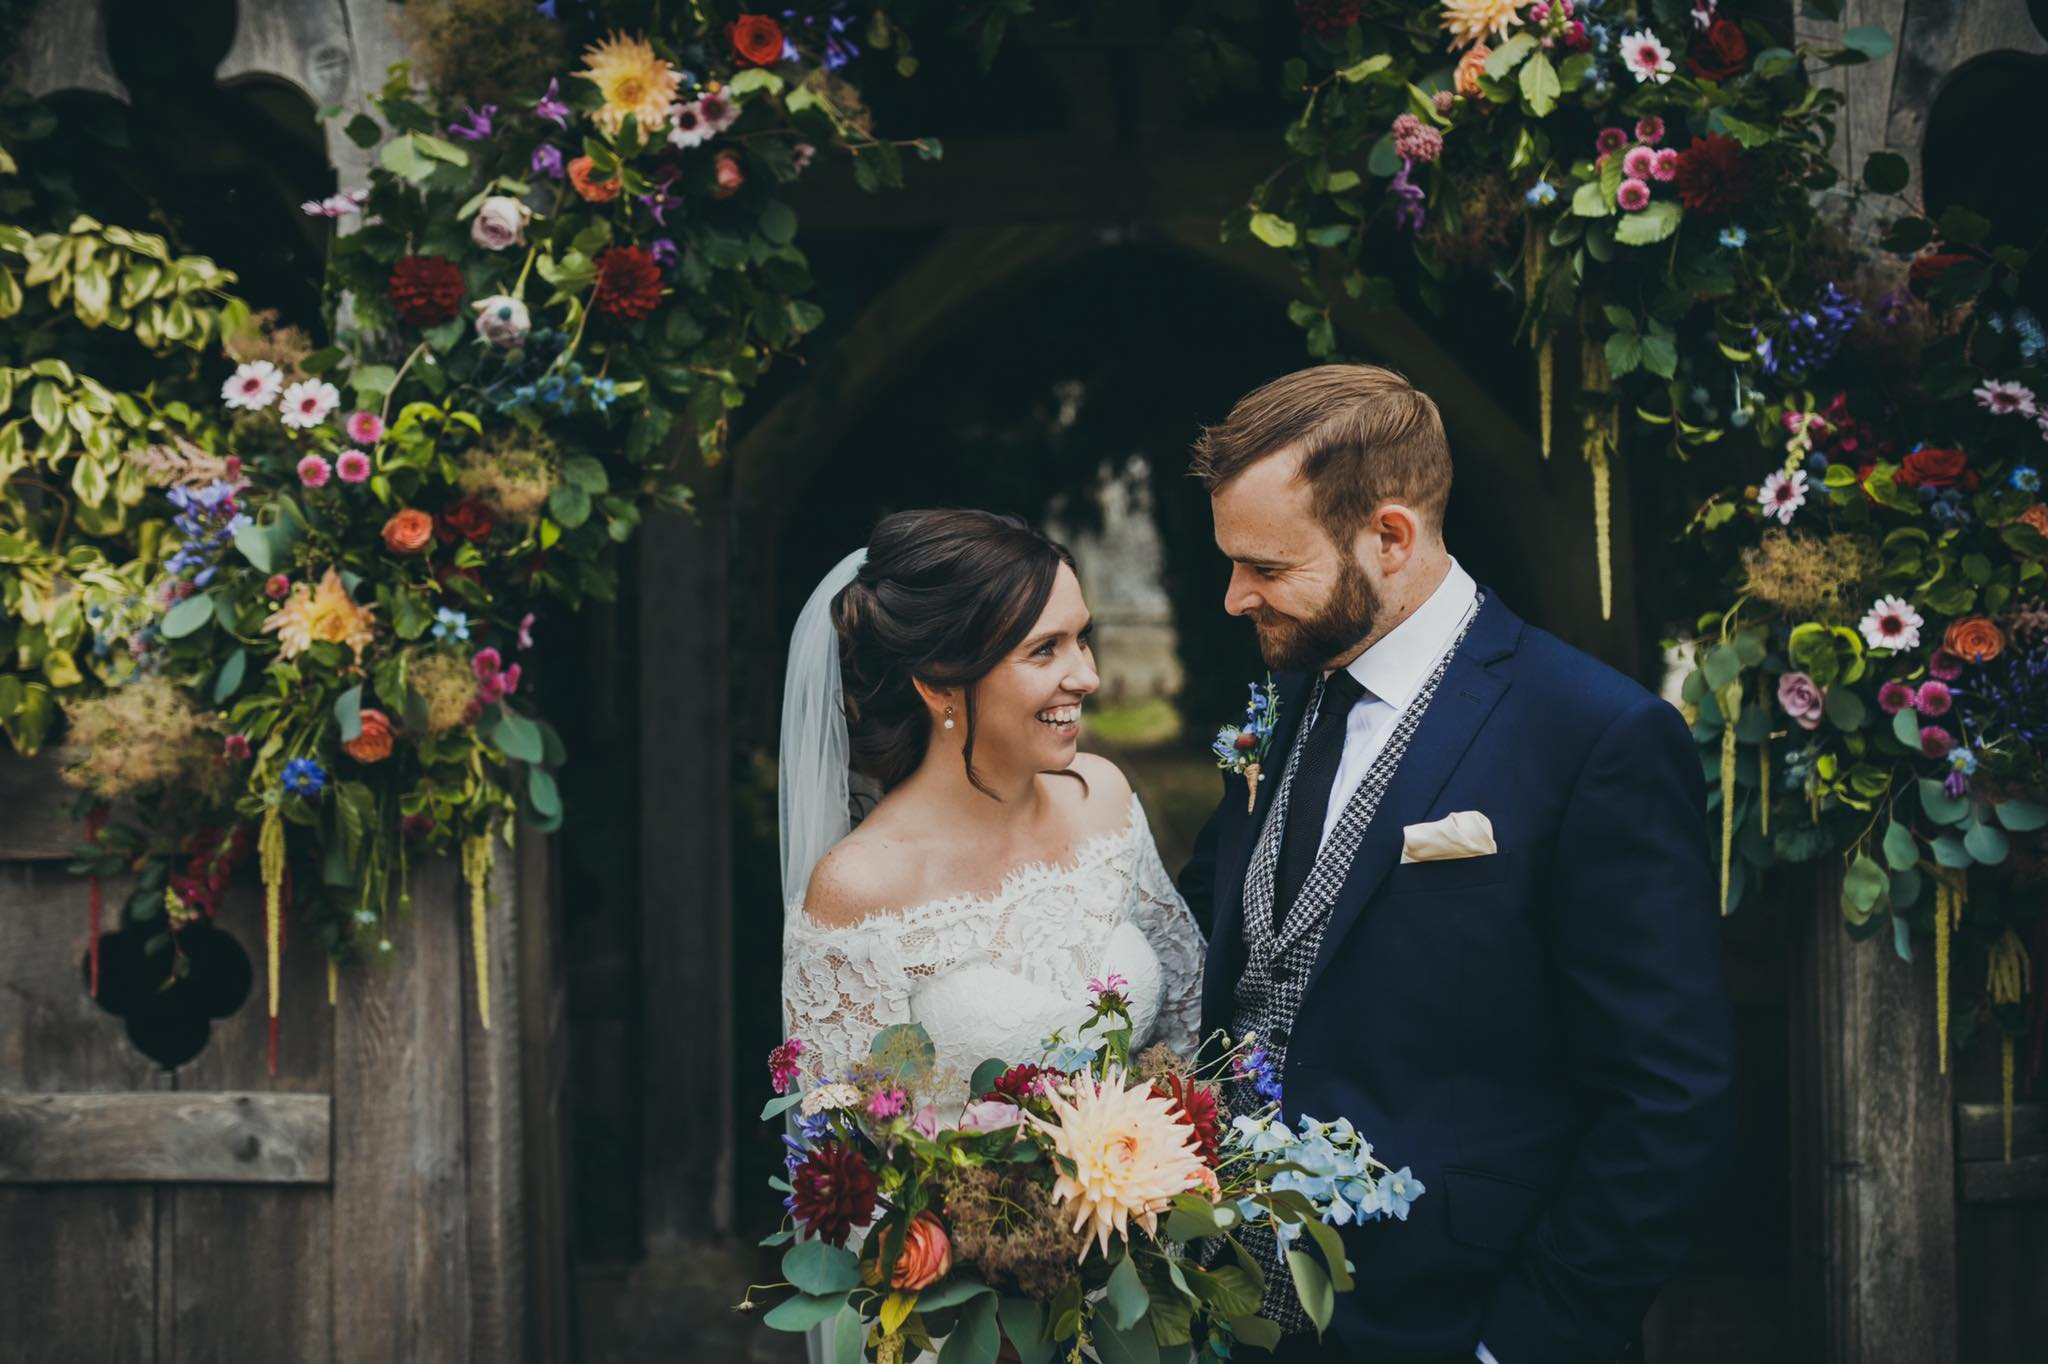 Bridal Hair in Hampshire | Stunning Hampshire bride with hair by Michelle Crosser